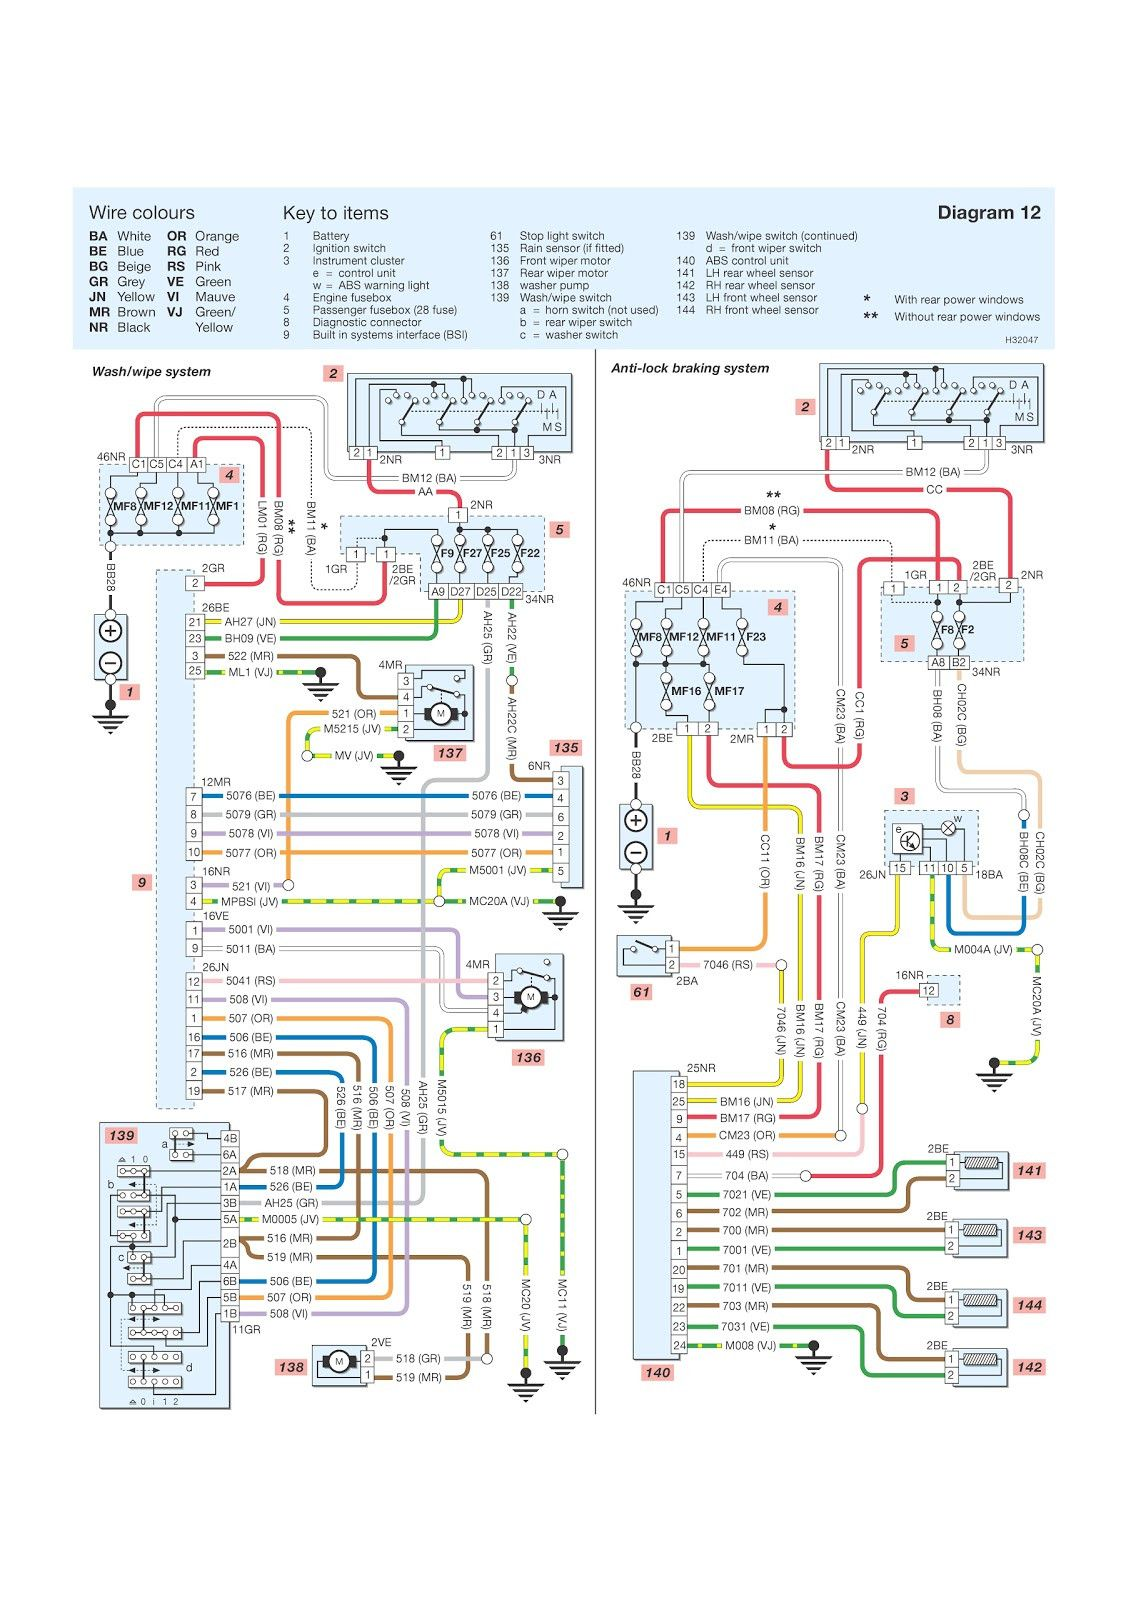 peugeot wiring diagram wiring diagramspeugeot lights wiring diagram wiring diagrams peugeot 206 gti wiring diagram peugeot sum up wiring